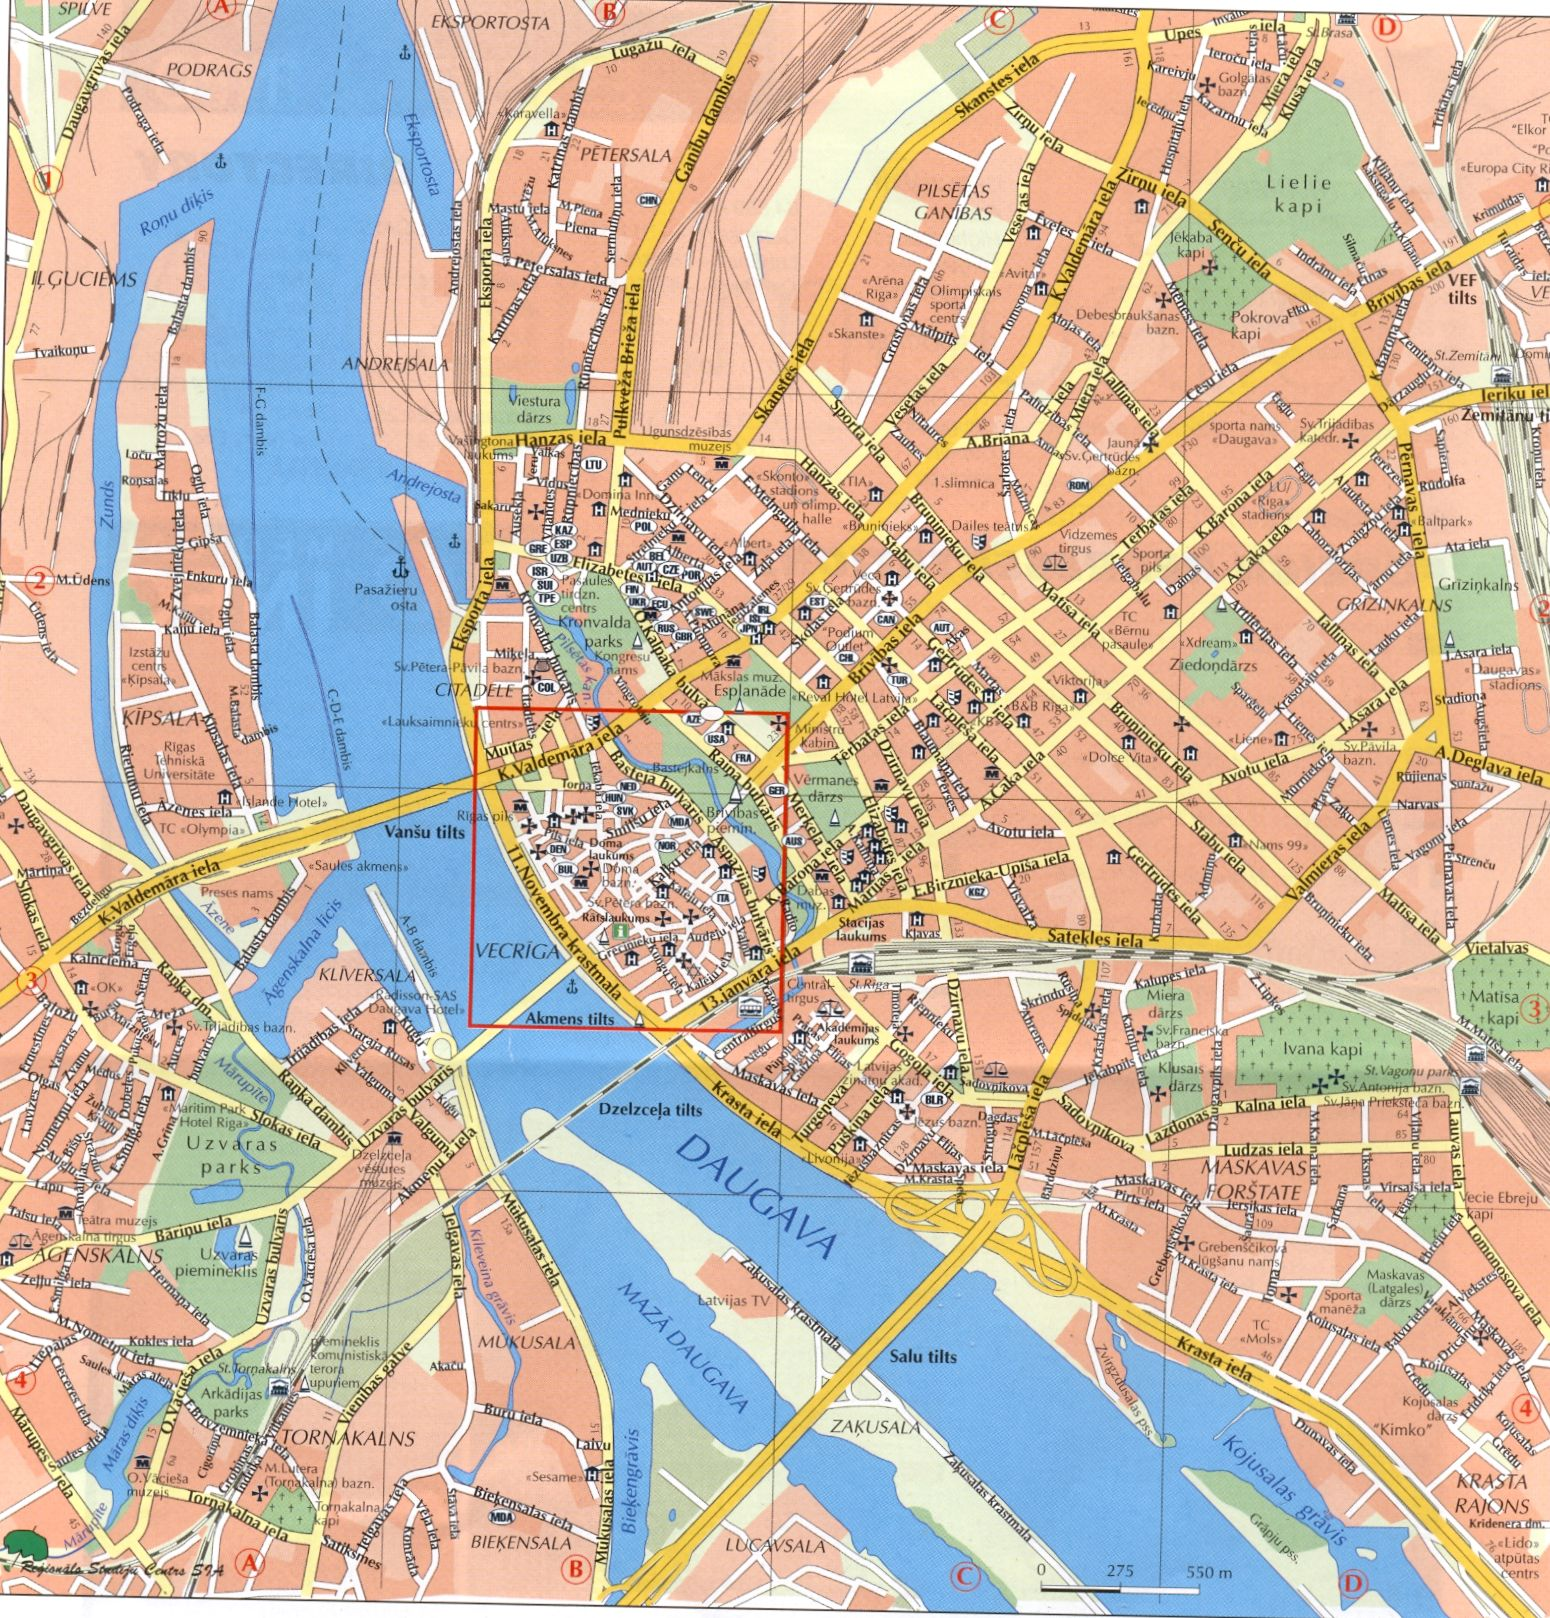 Maps of Latvia and the capital city Riga in the Baltics Region of NE